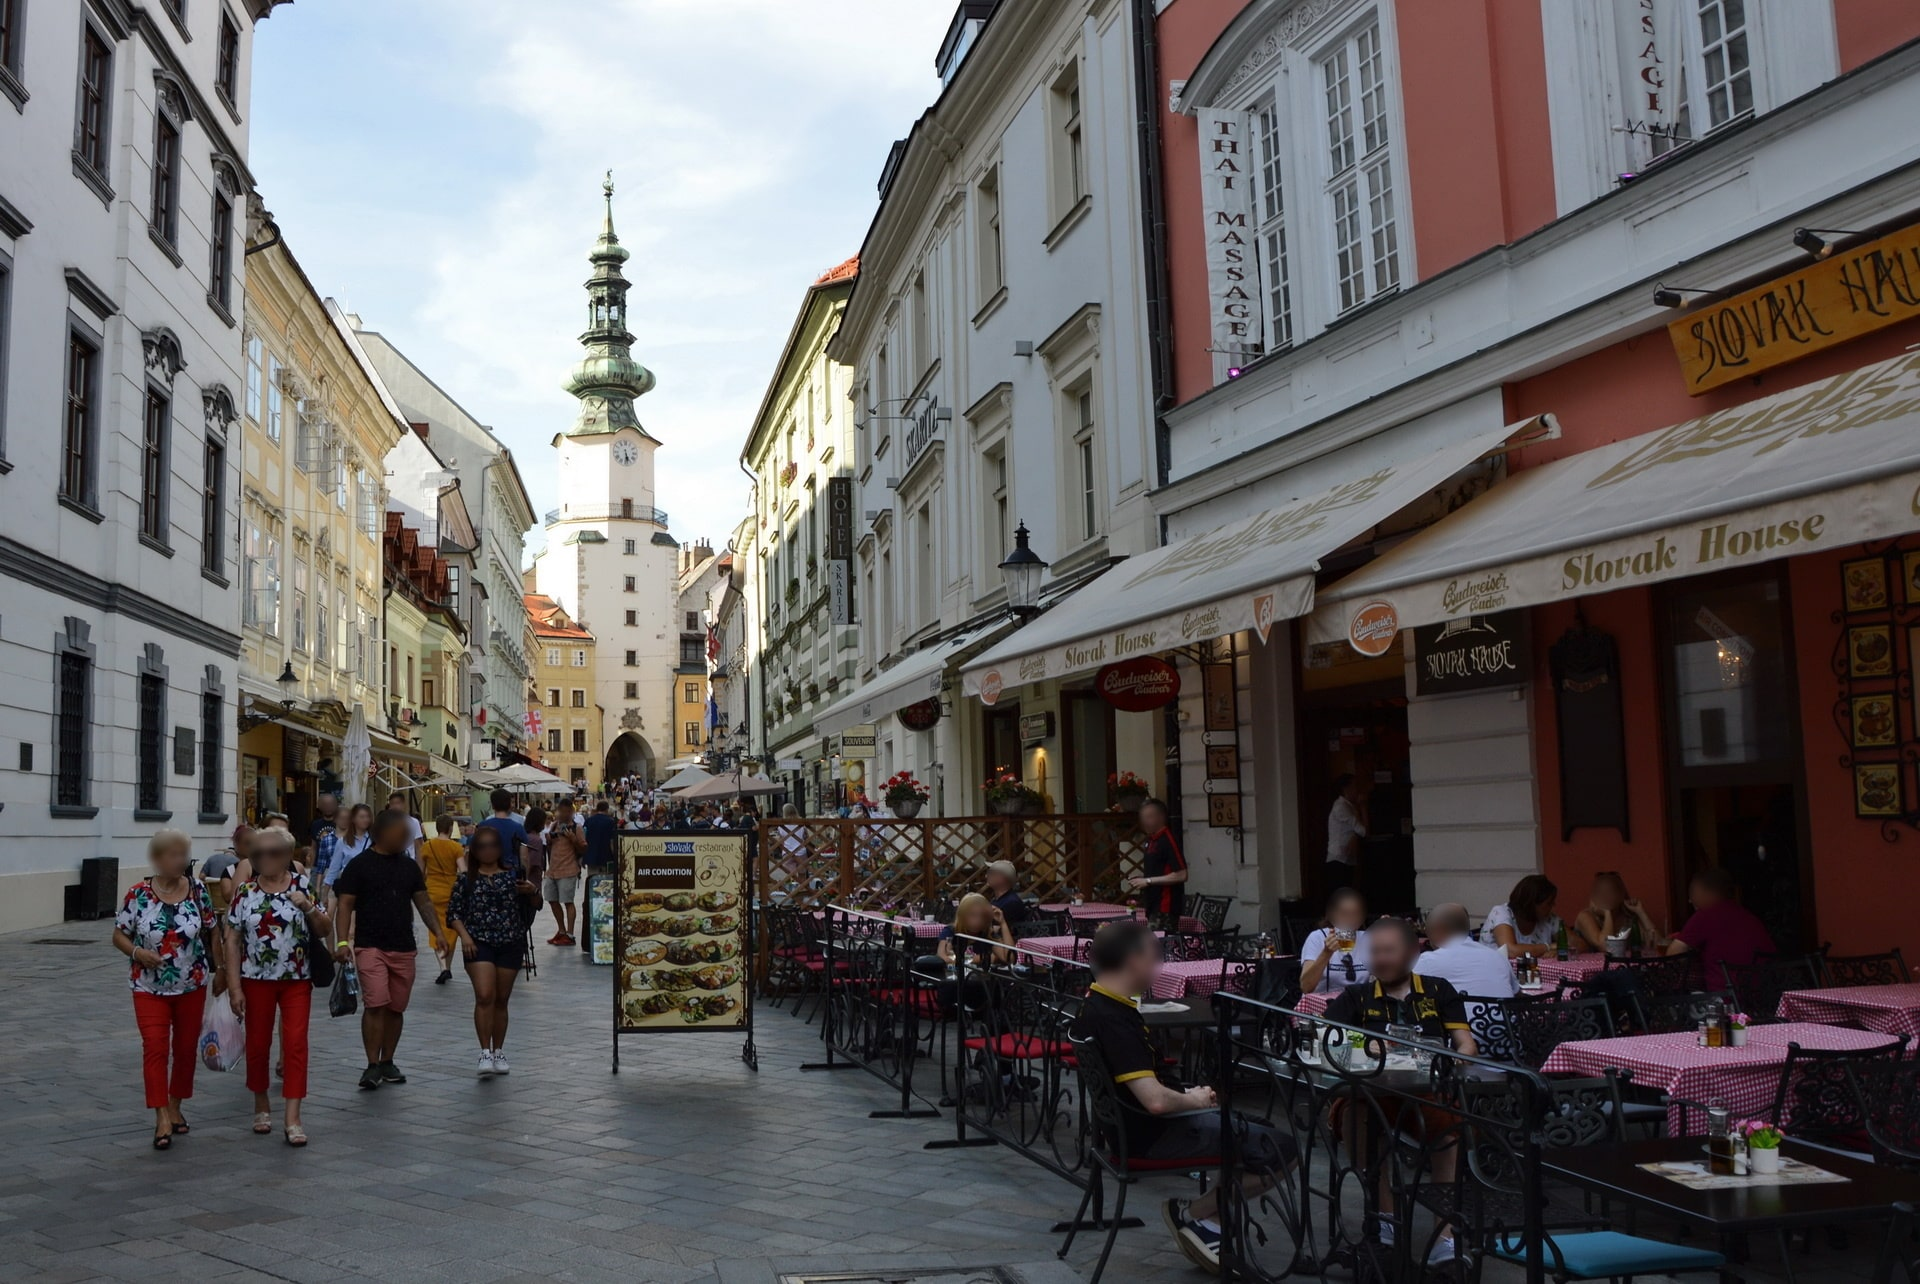 St. Michael's gate at the end of Michalská street lined with restaurants